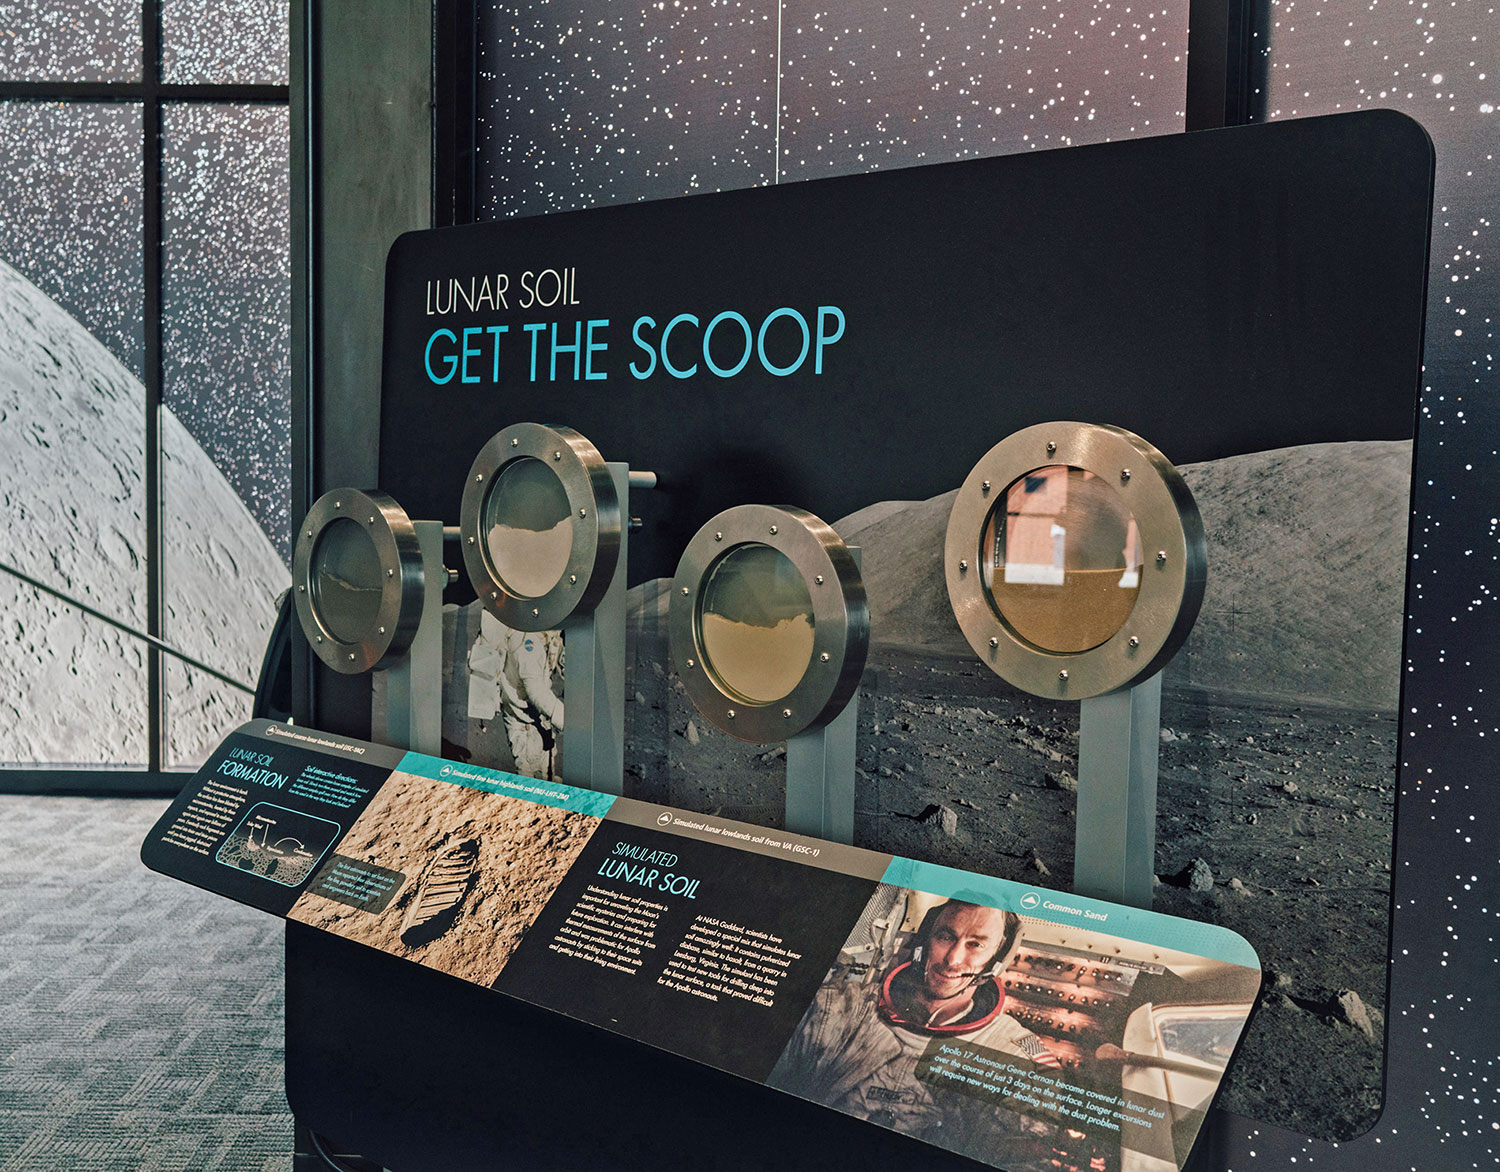 Lunar Soil Exhibit